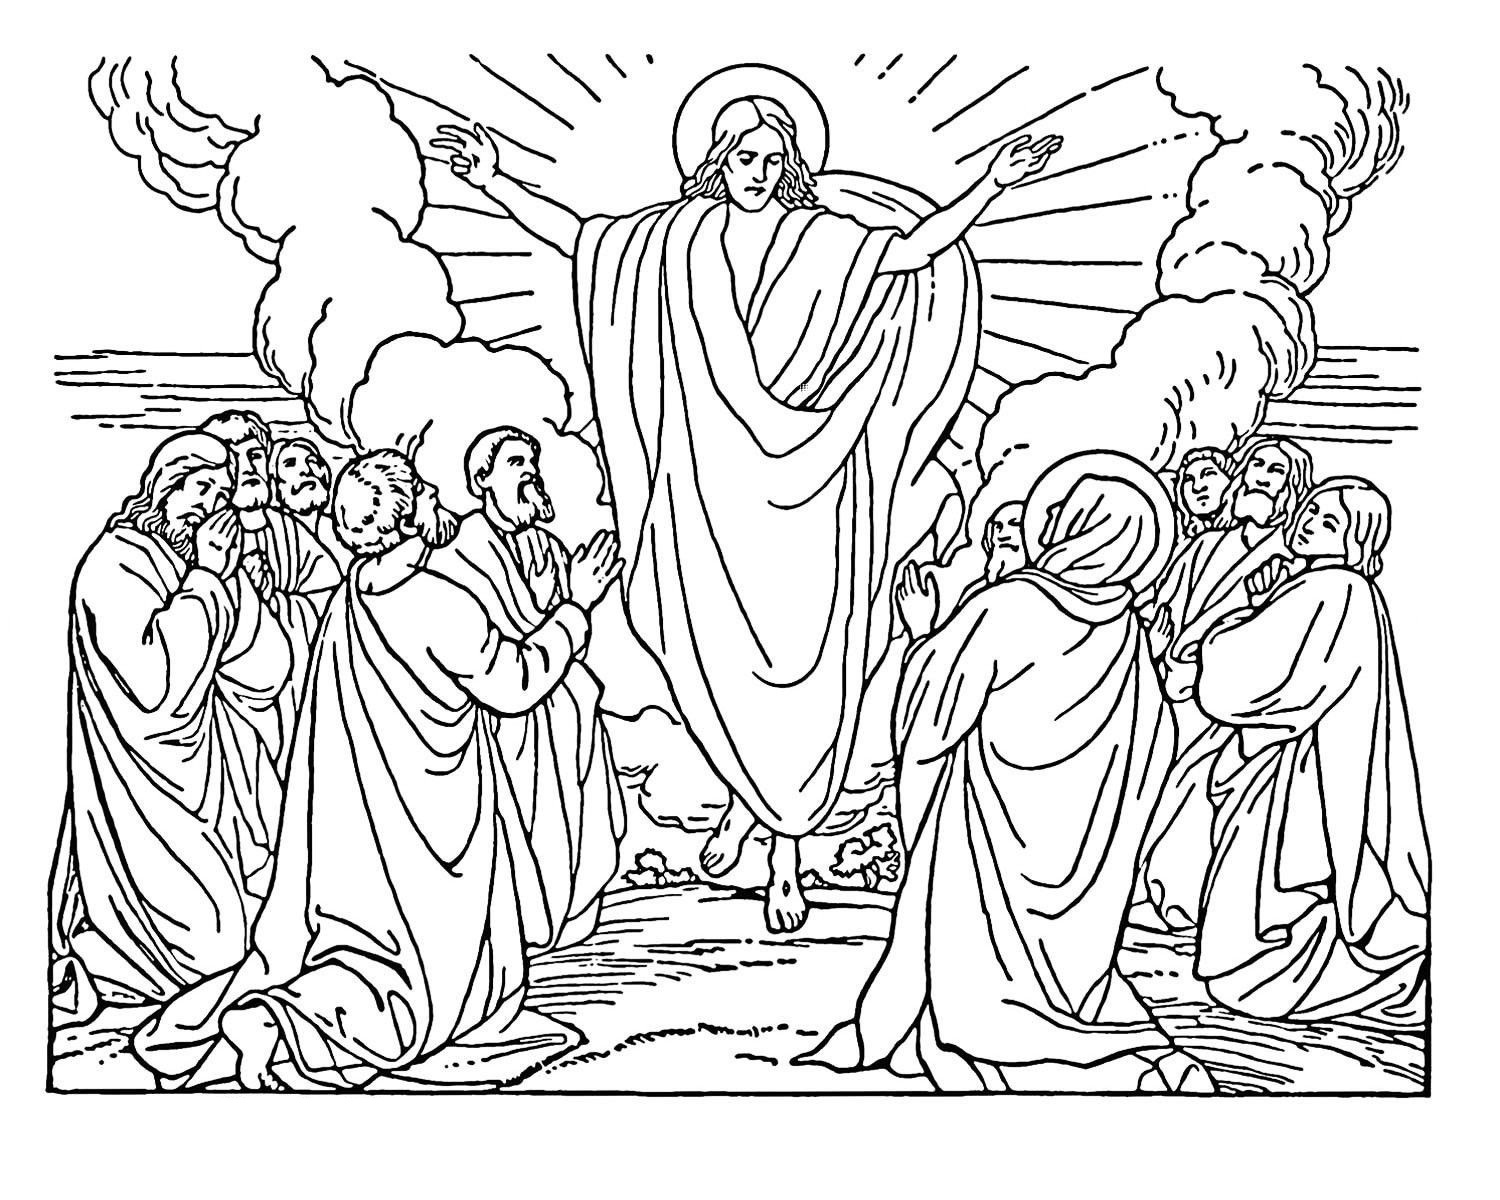 Free printable bible coloring pages for kids for Coloring pages of jesus